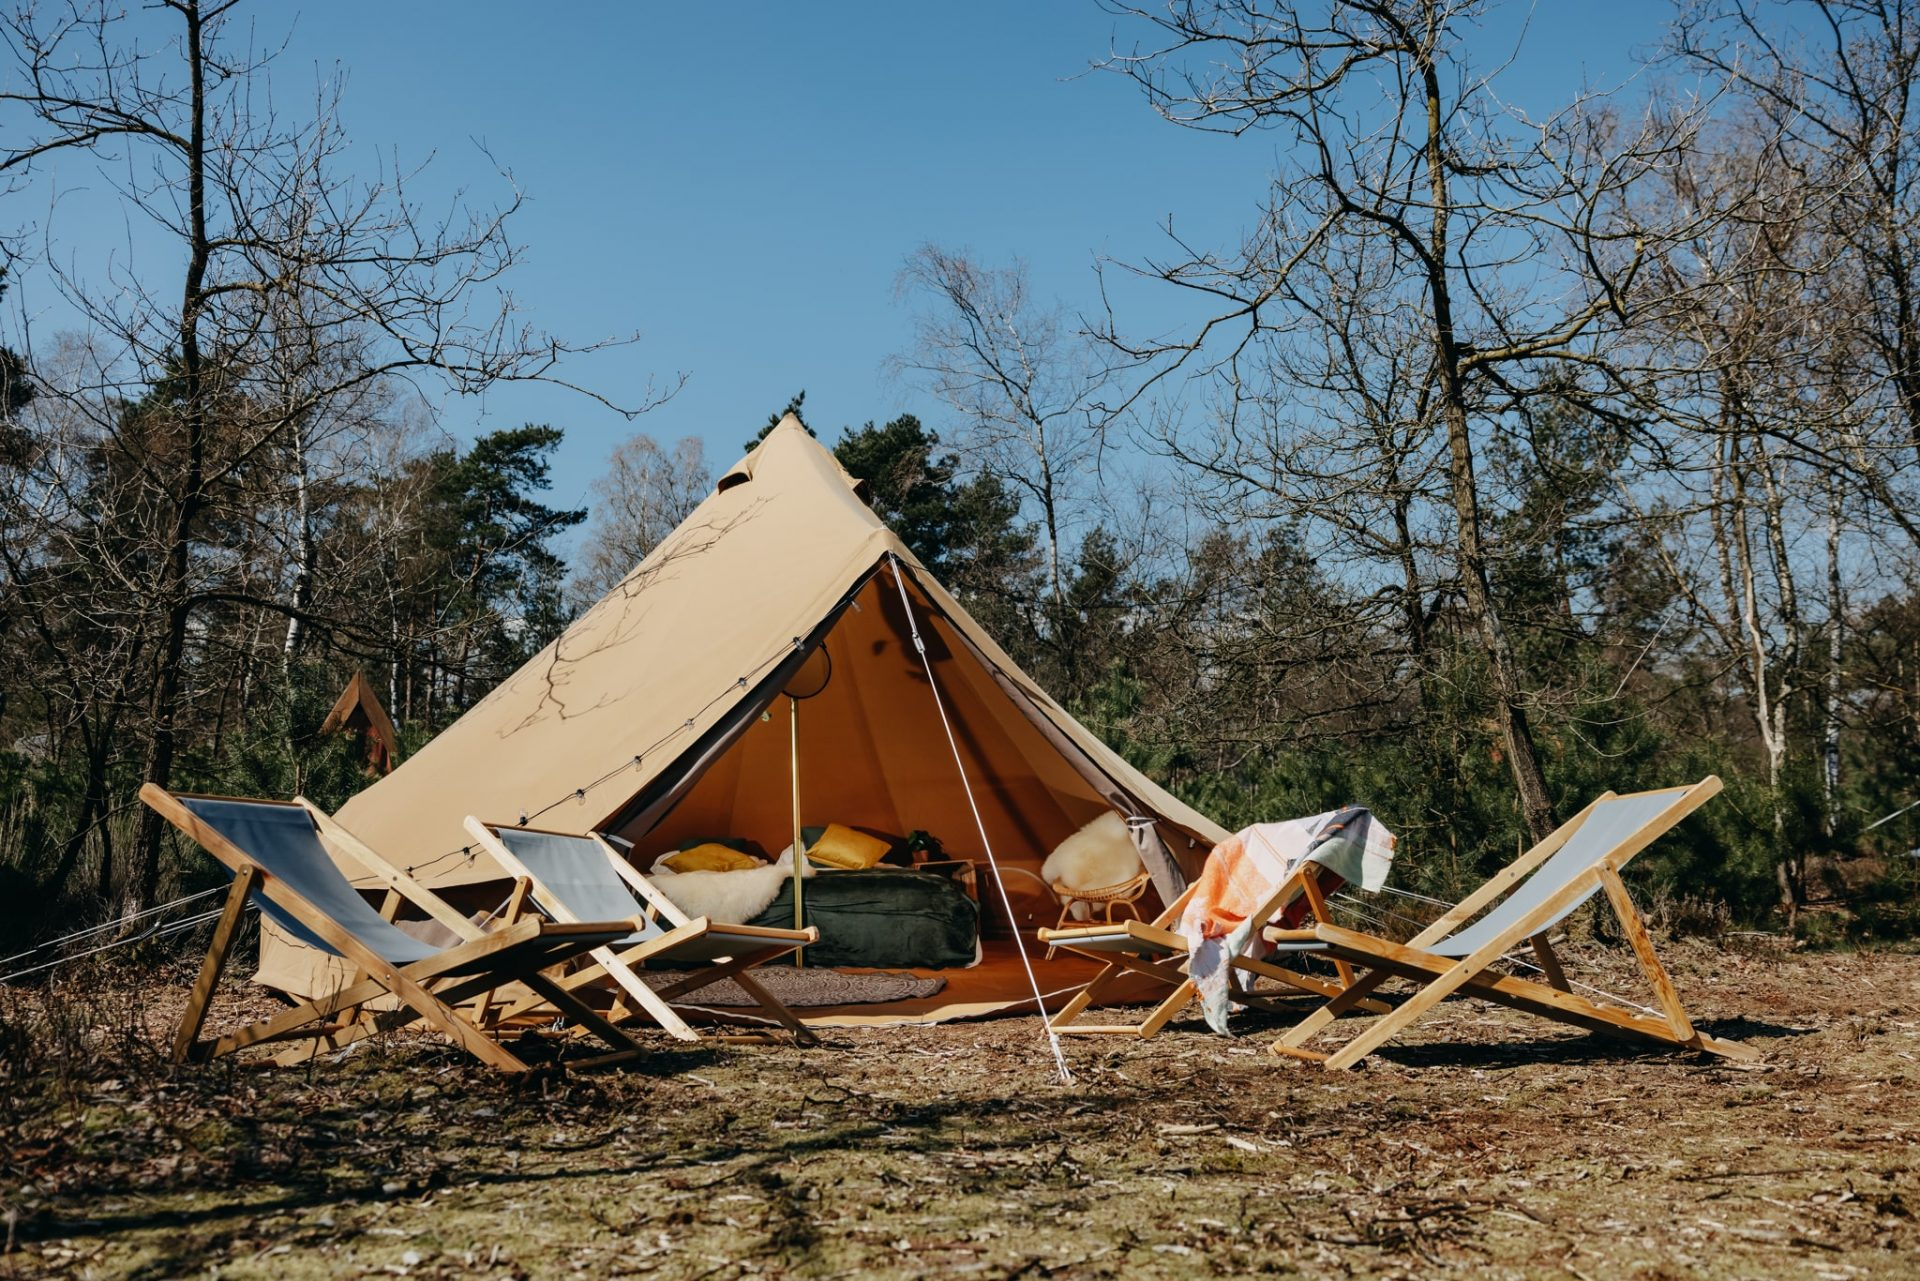 Glamp Outdoor Camp pop-up glamping